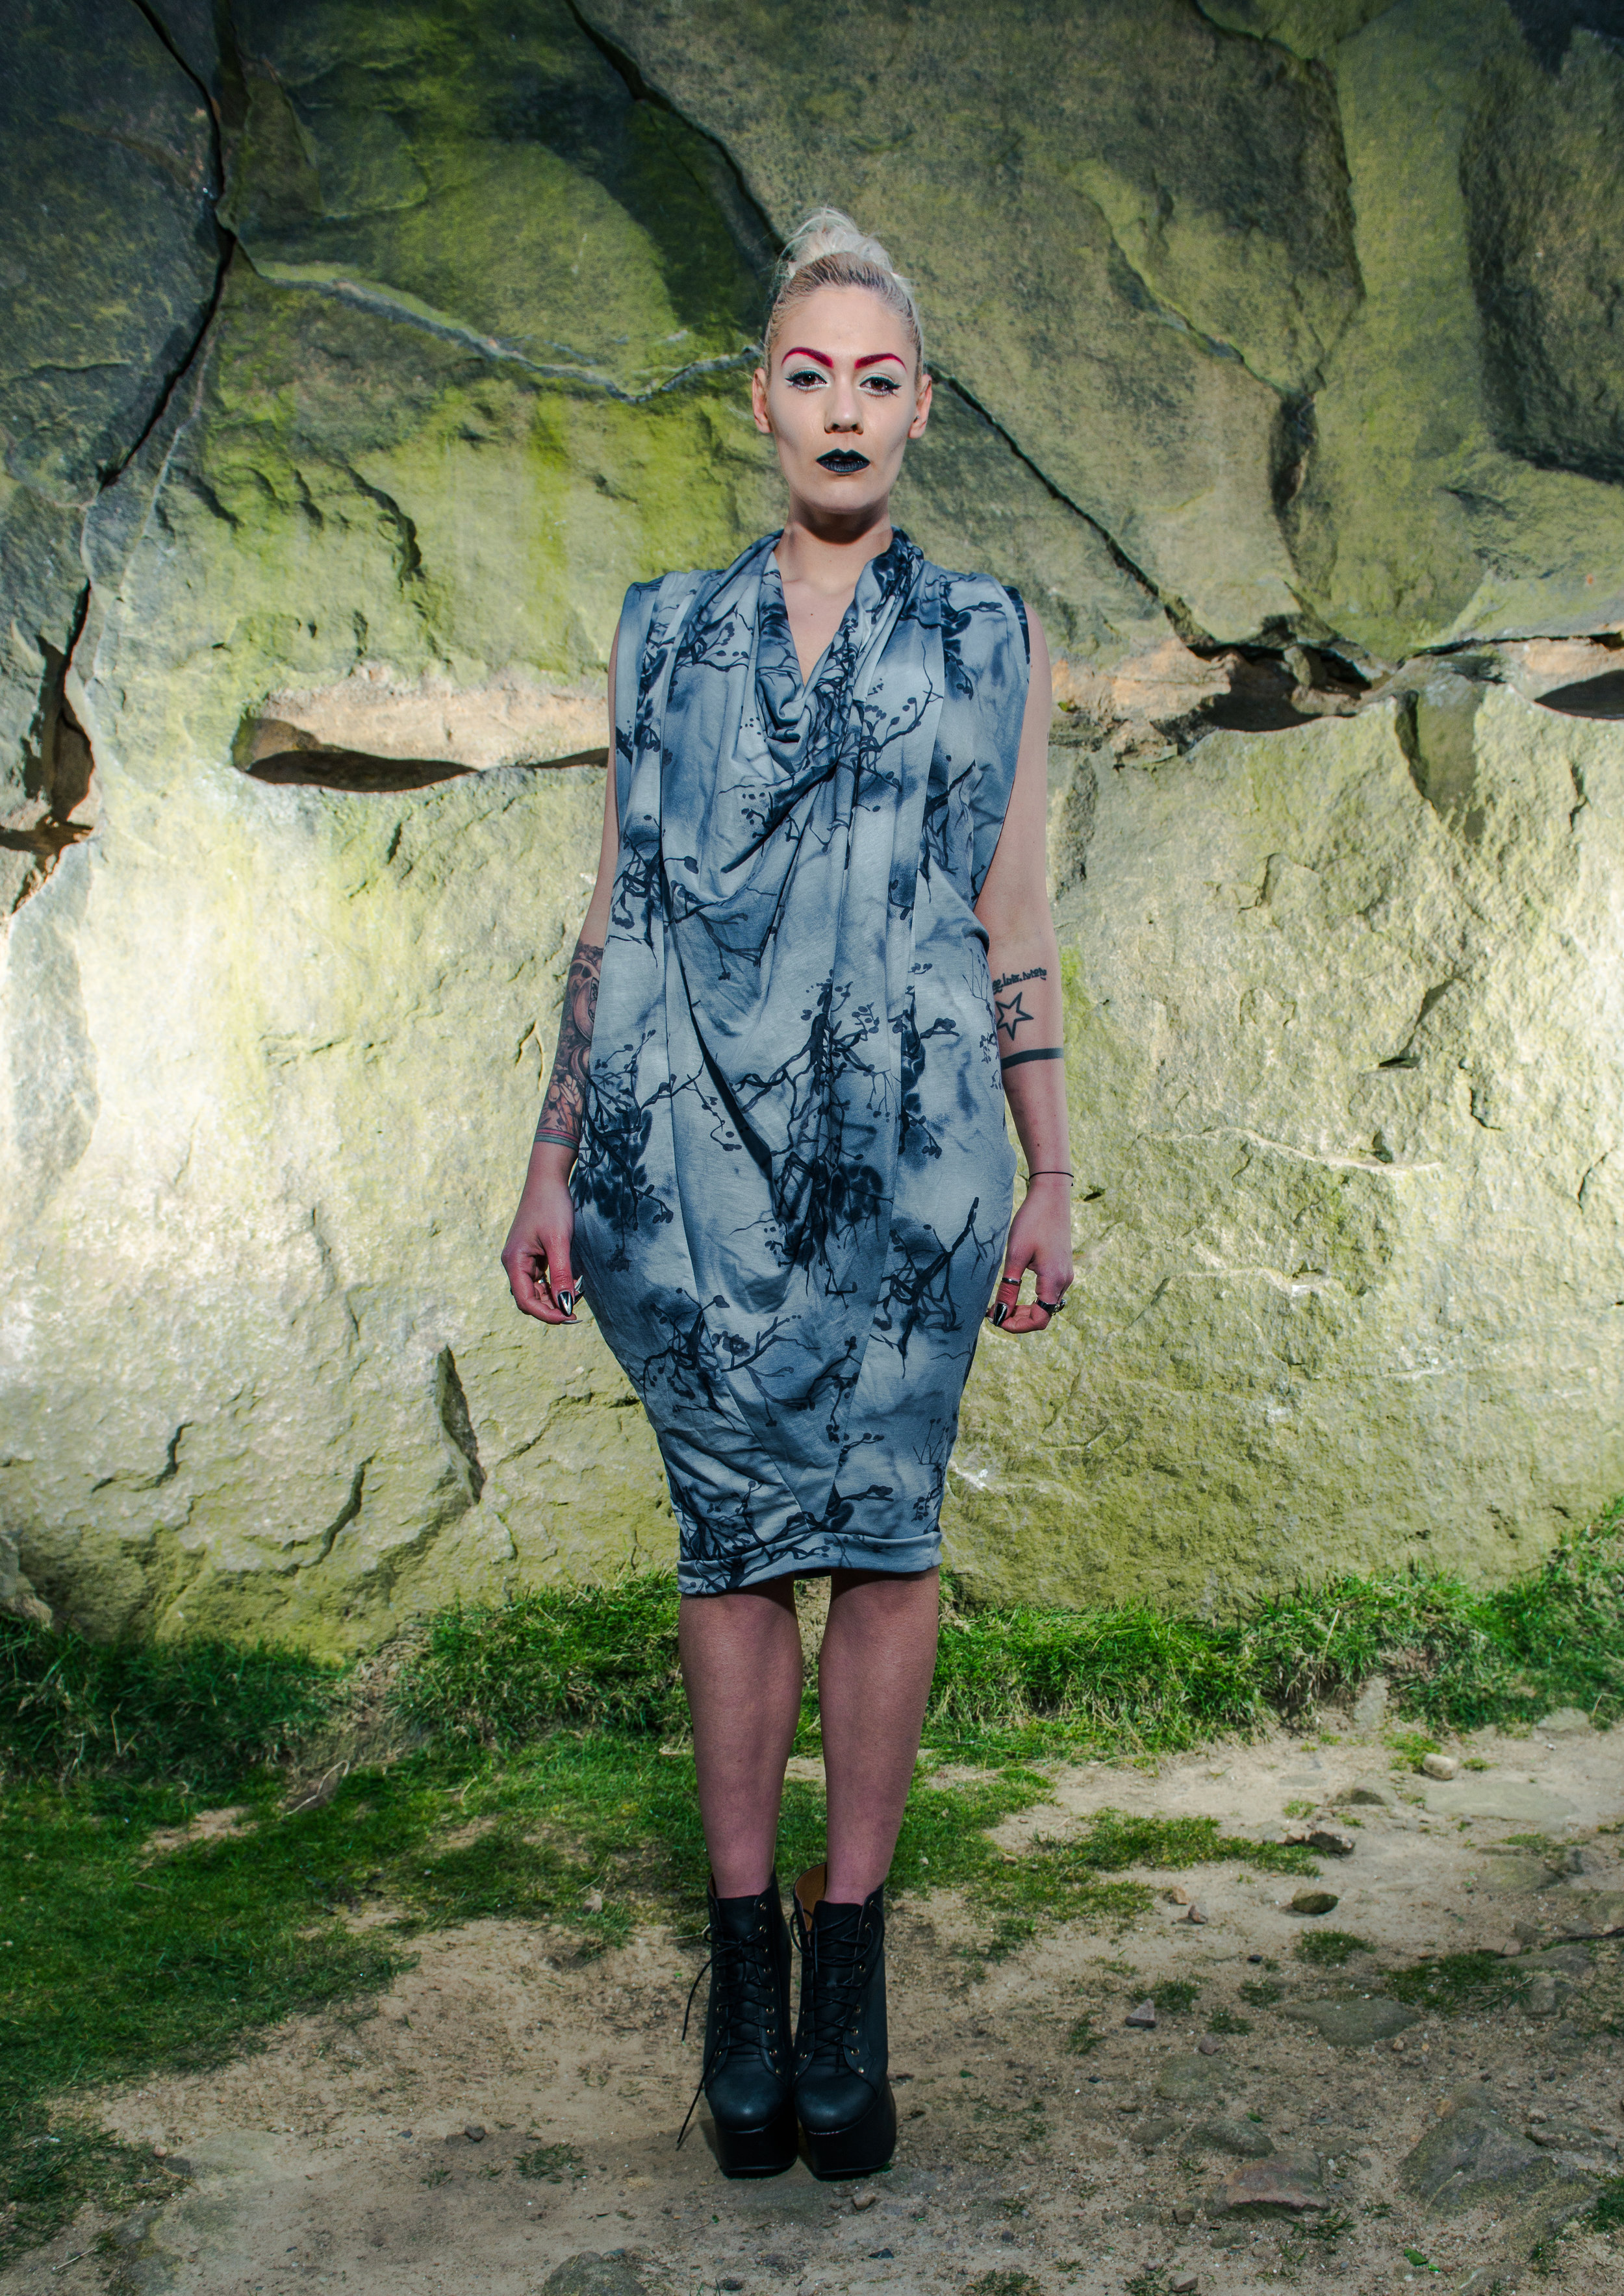 zaramia-ava-zaramiaava-leeds-fashion-designer-ethical-sustainable-tailored-minimalist-aya-grey-print-fitted-versatile-drape-cowl-styling-womenswear-models-photoshoot-location-15